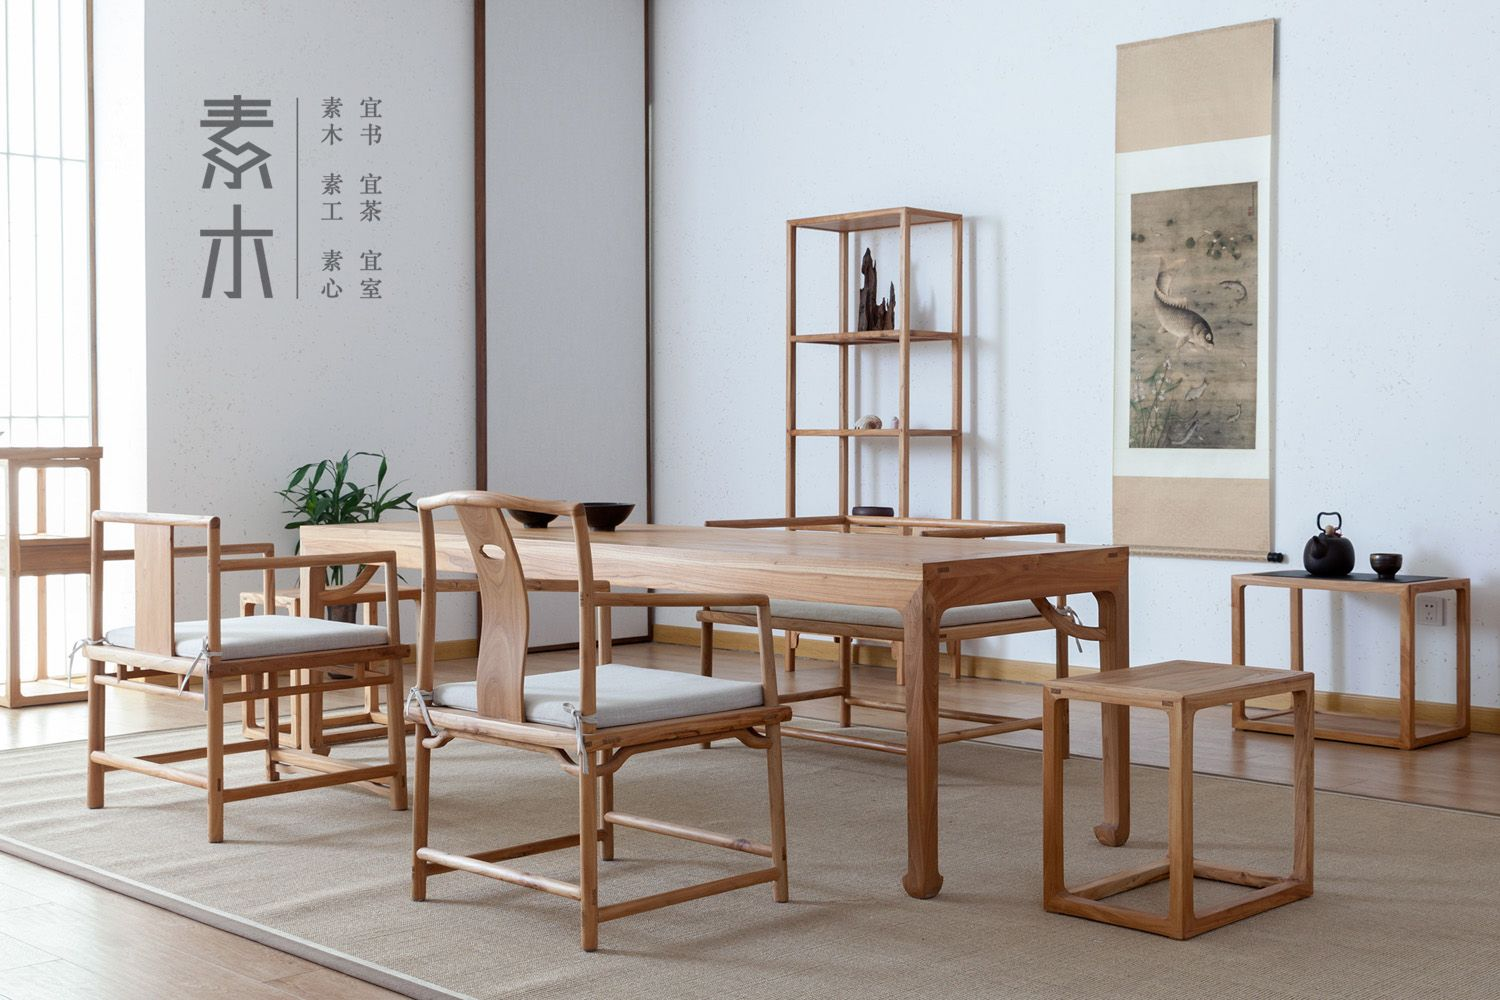 Ming-style Furniture chairs |  | Pinterest | Chinese ...